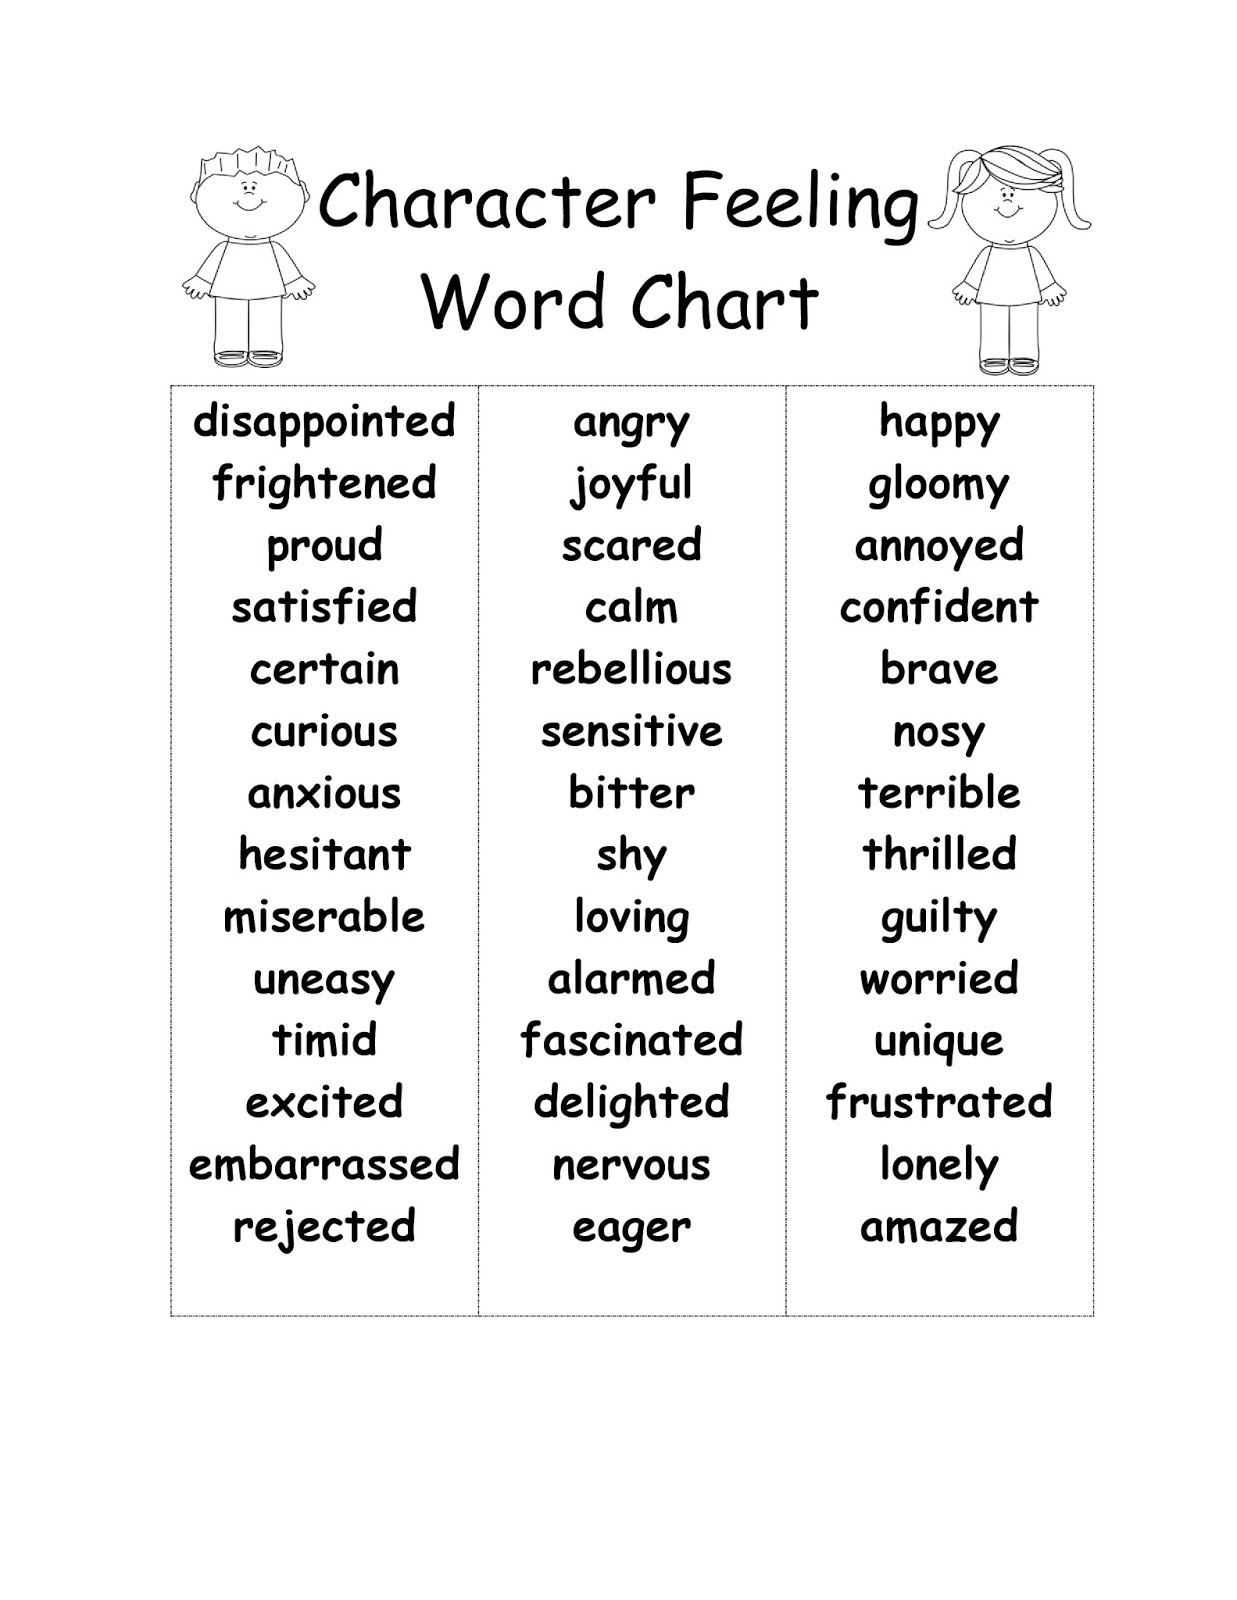 Updated Character Feelings Word Chart